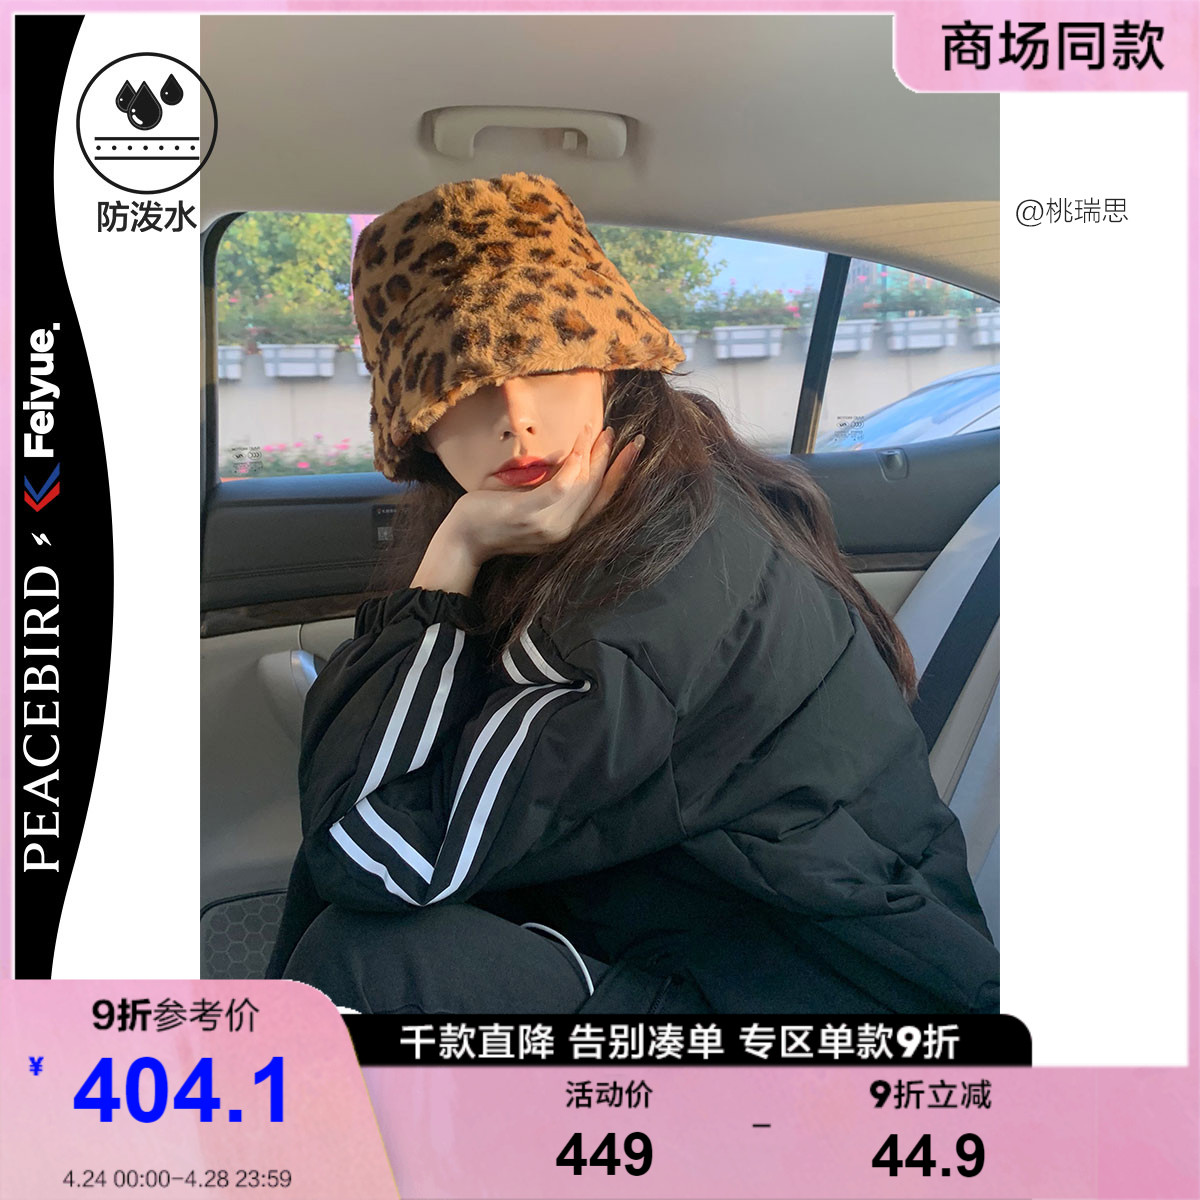 Peacebird Feiyue Joint 2020 Winter New Short Loose Bread Jacket Women Black Fashion Down Jacket